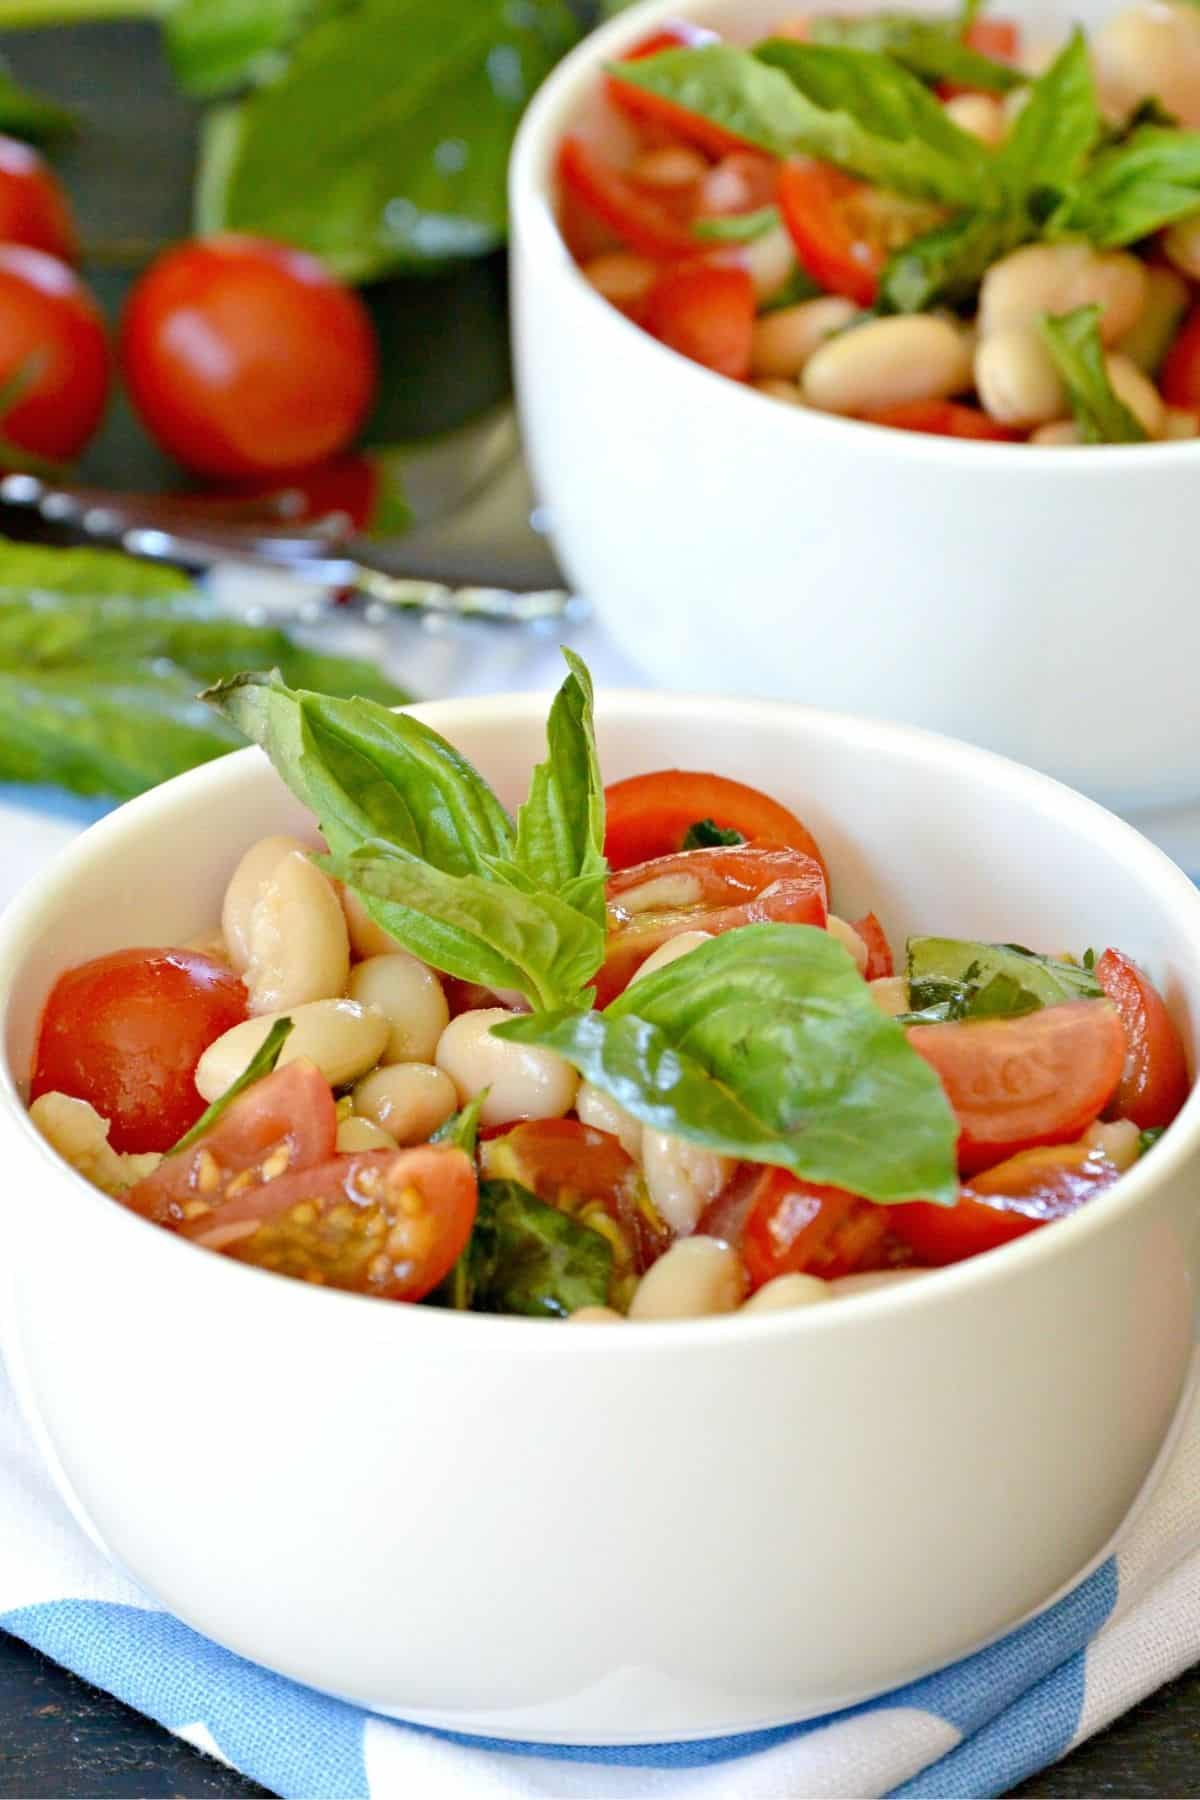 Bowls of Italian White Bean Salad topped with sprigs of fresh basil